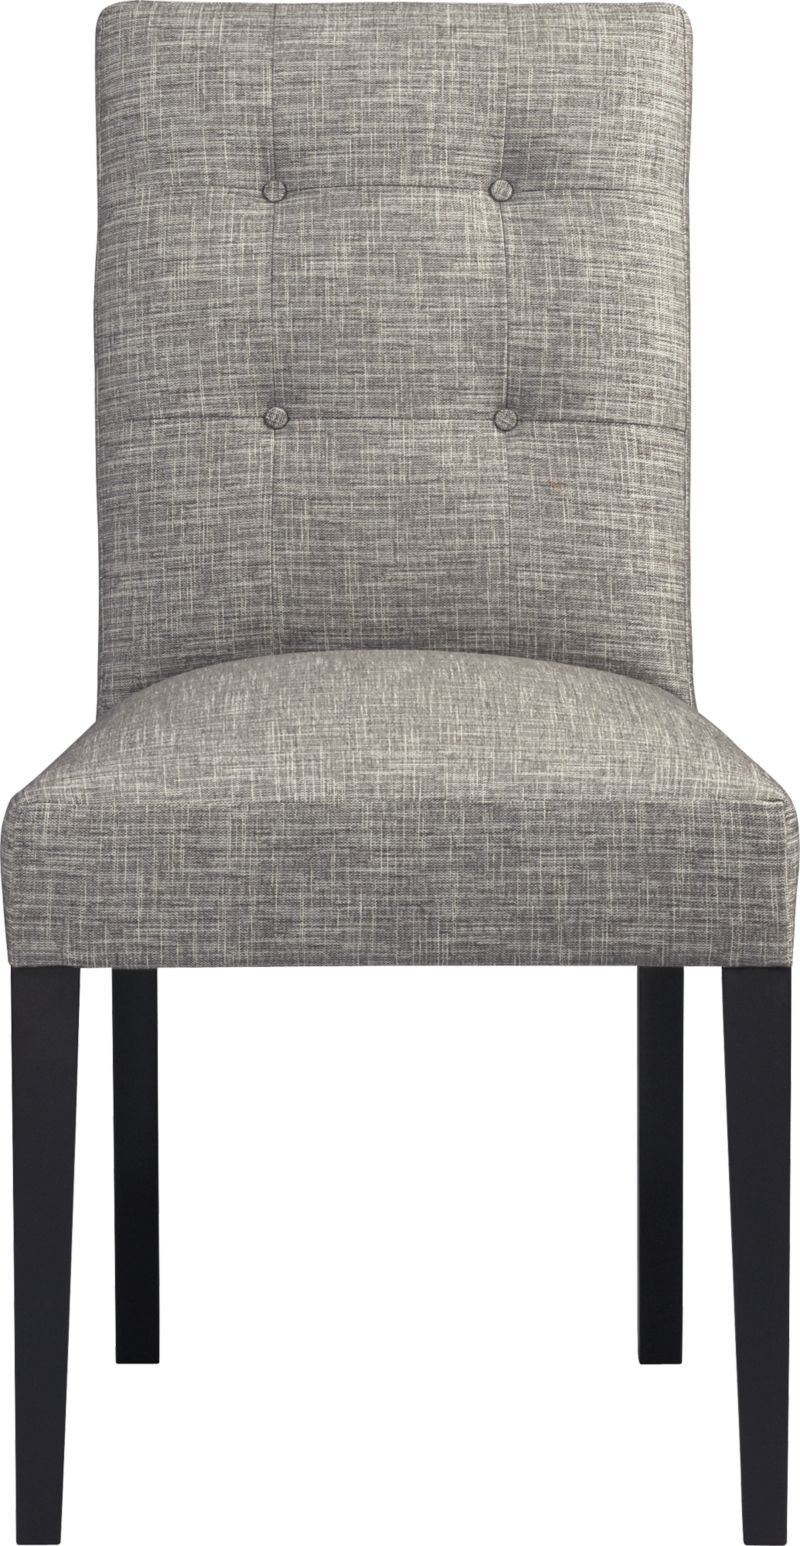 Square Contemporary Chair Buttons Down Modern Style In Sketchy Graphite Weave Tufted Back And Padded ChairsLeather Dining Room